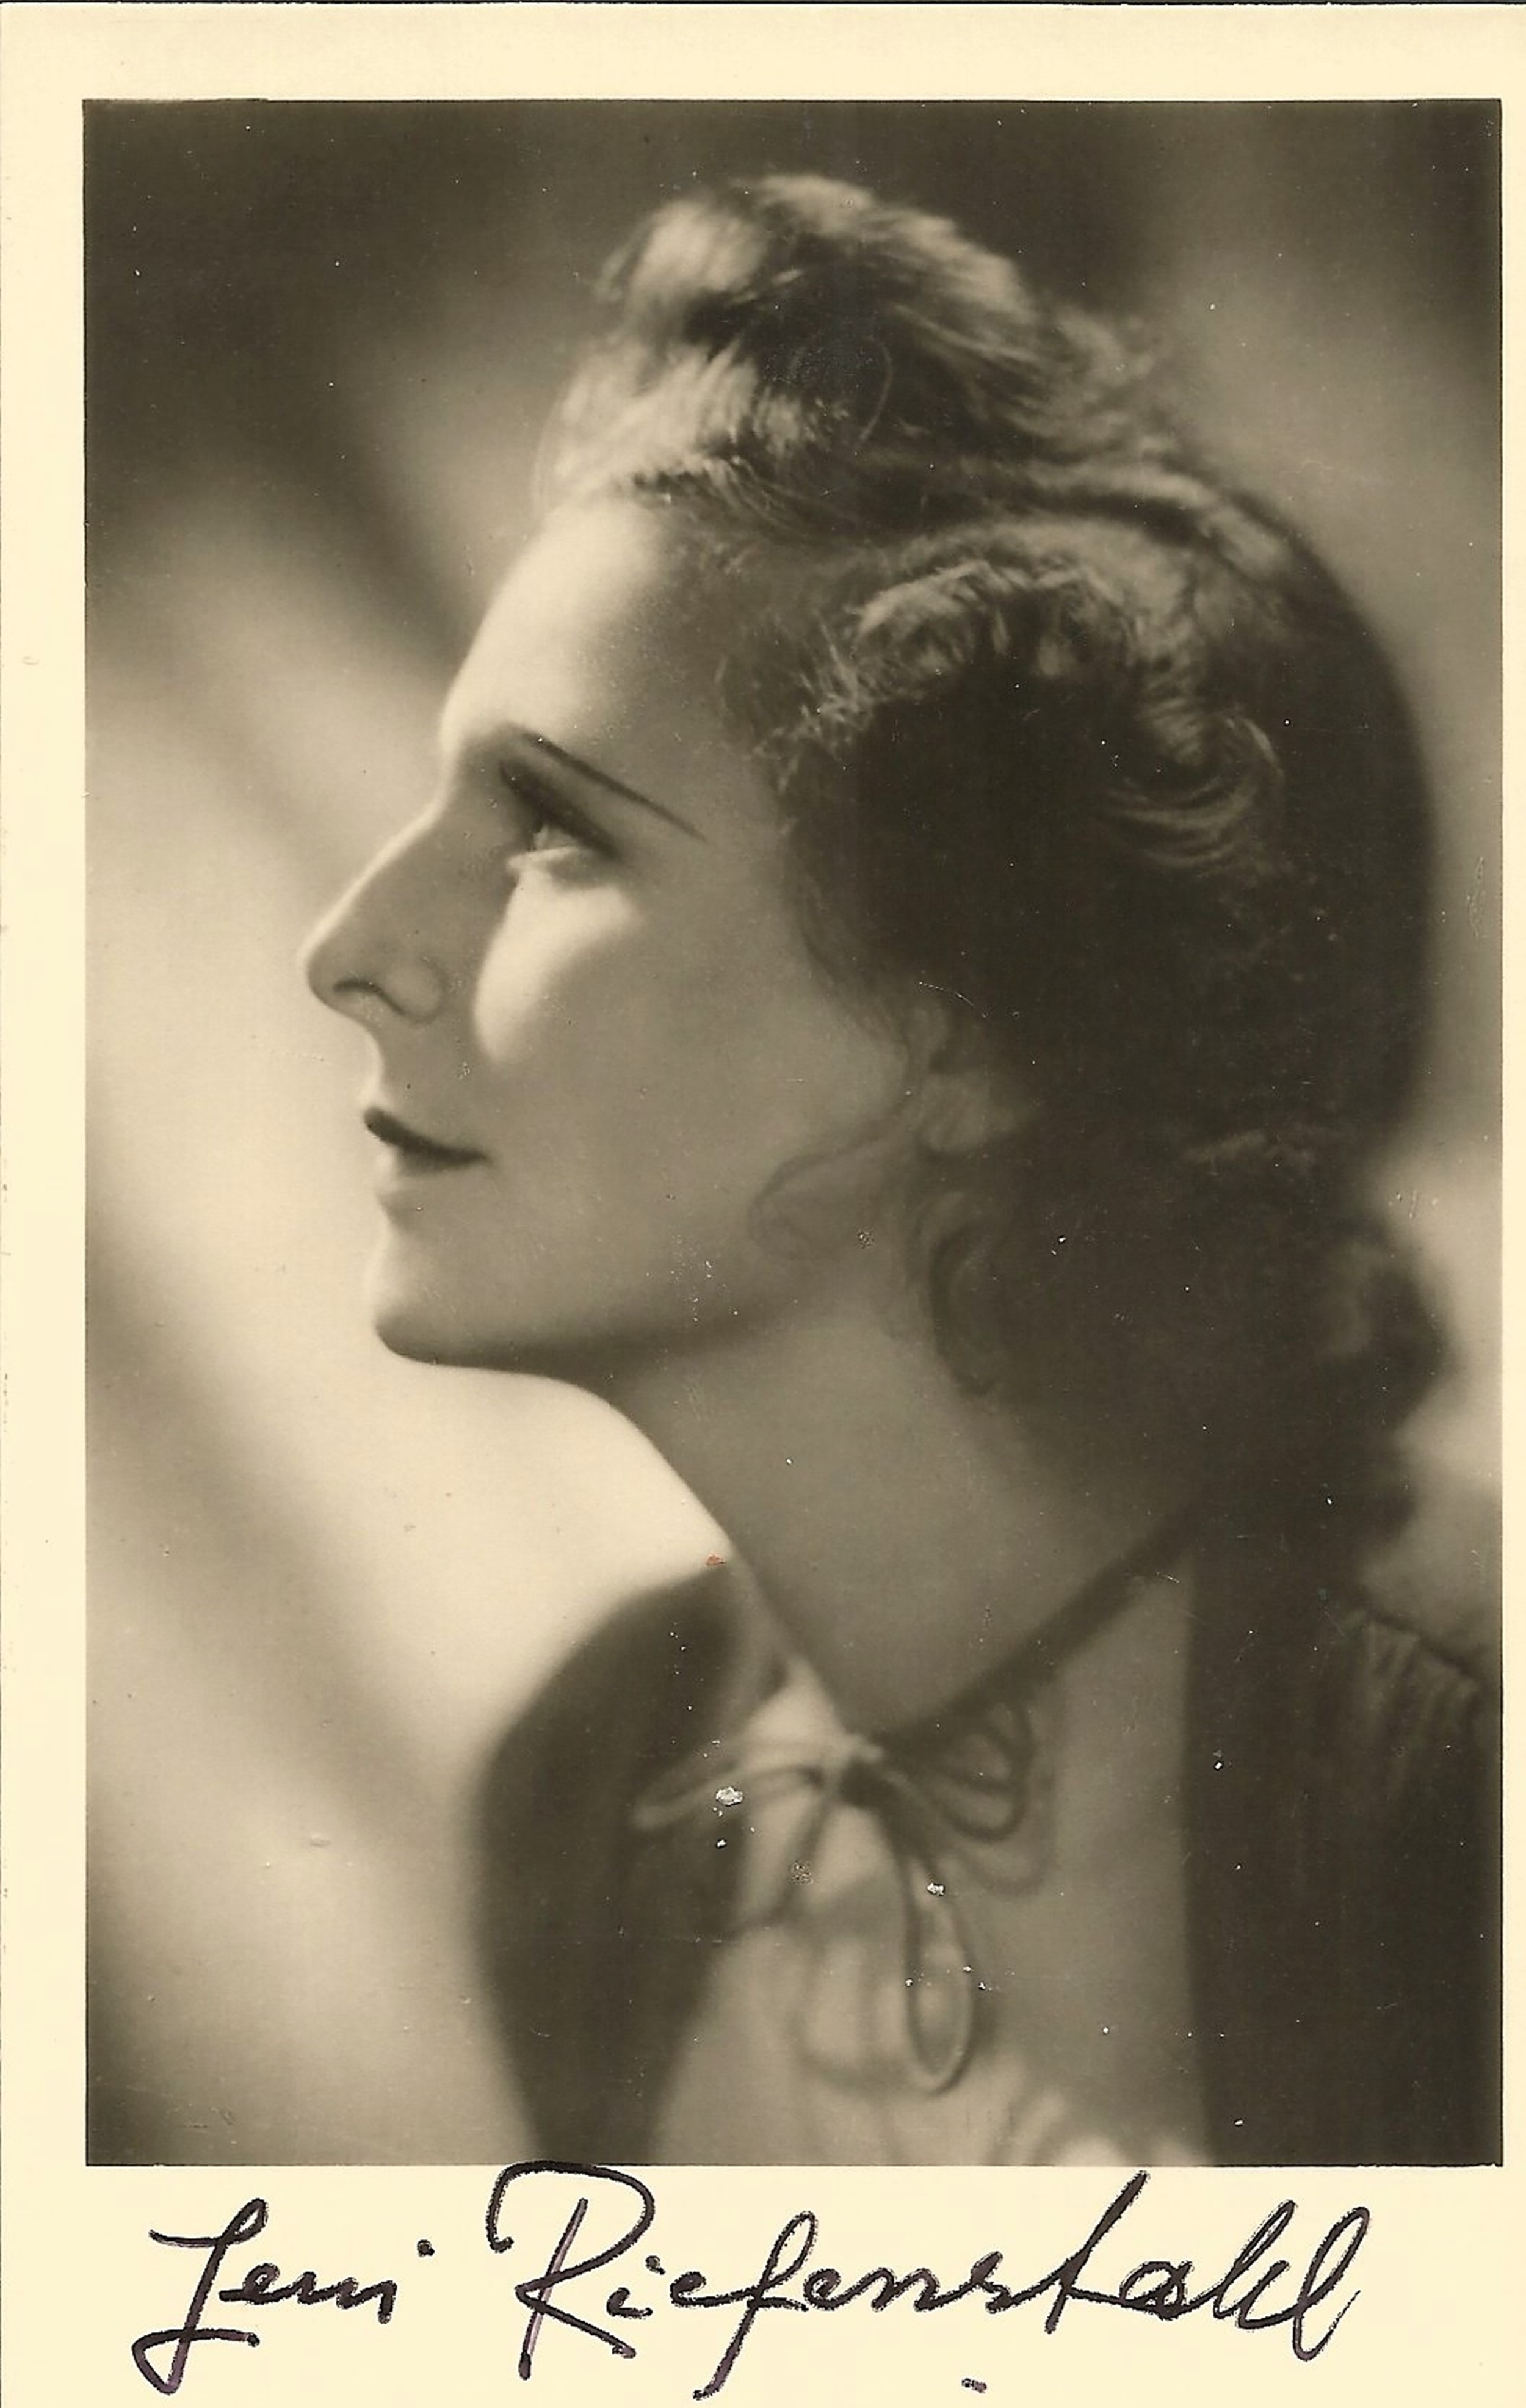 Leni Riefenstahl signed 5x3 vintage photo. Good condition. All autographs come with a Certificate of